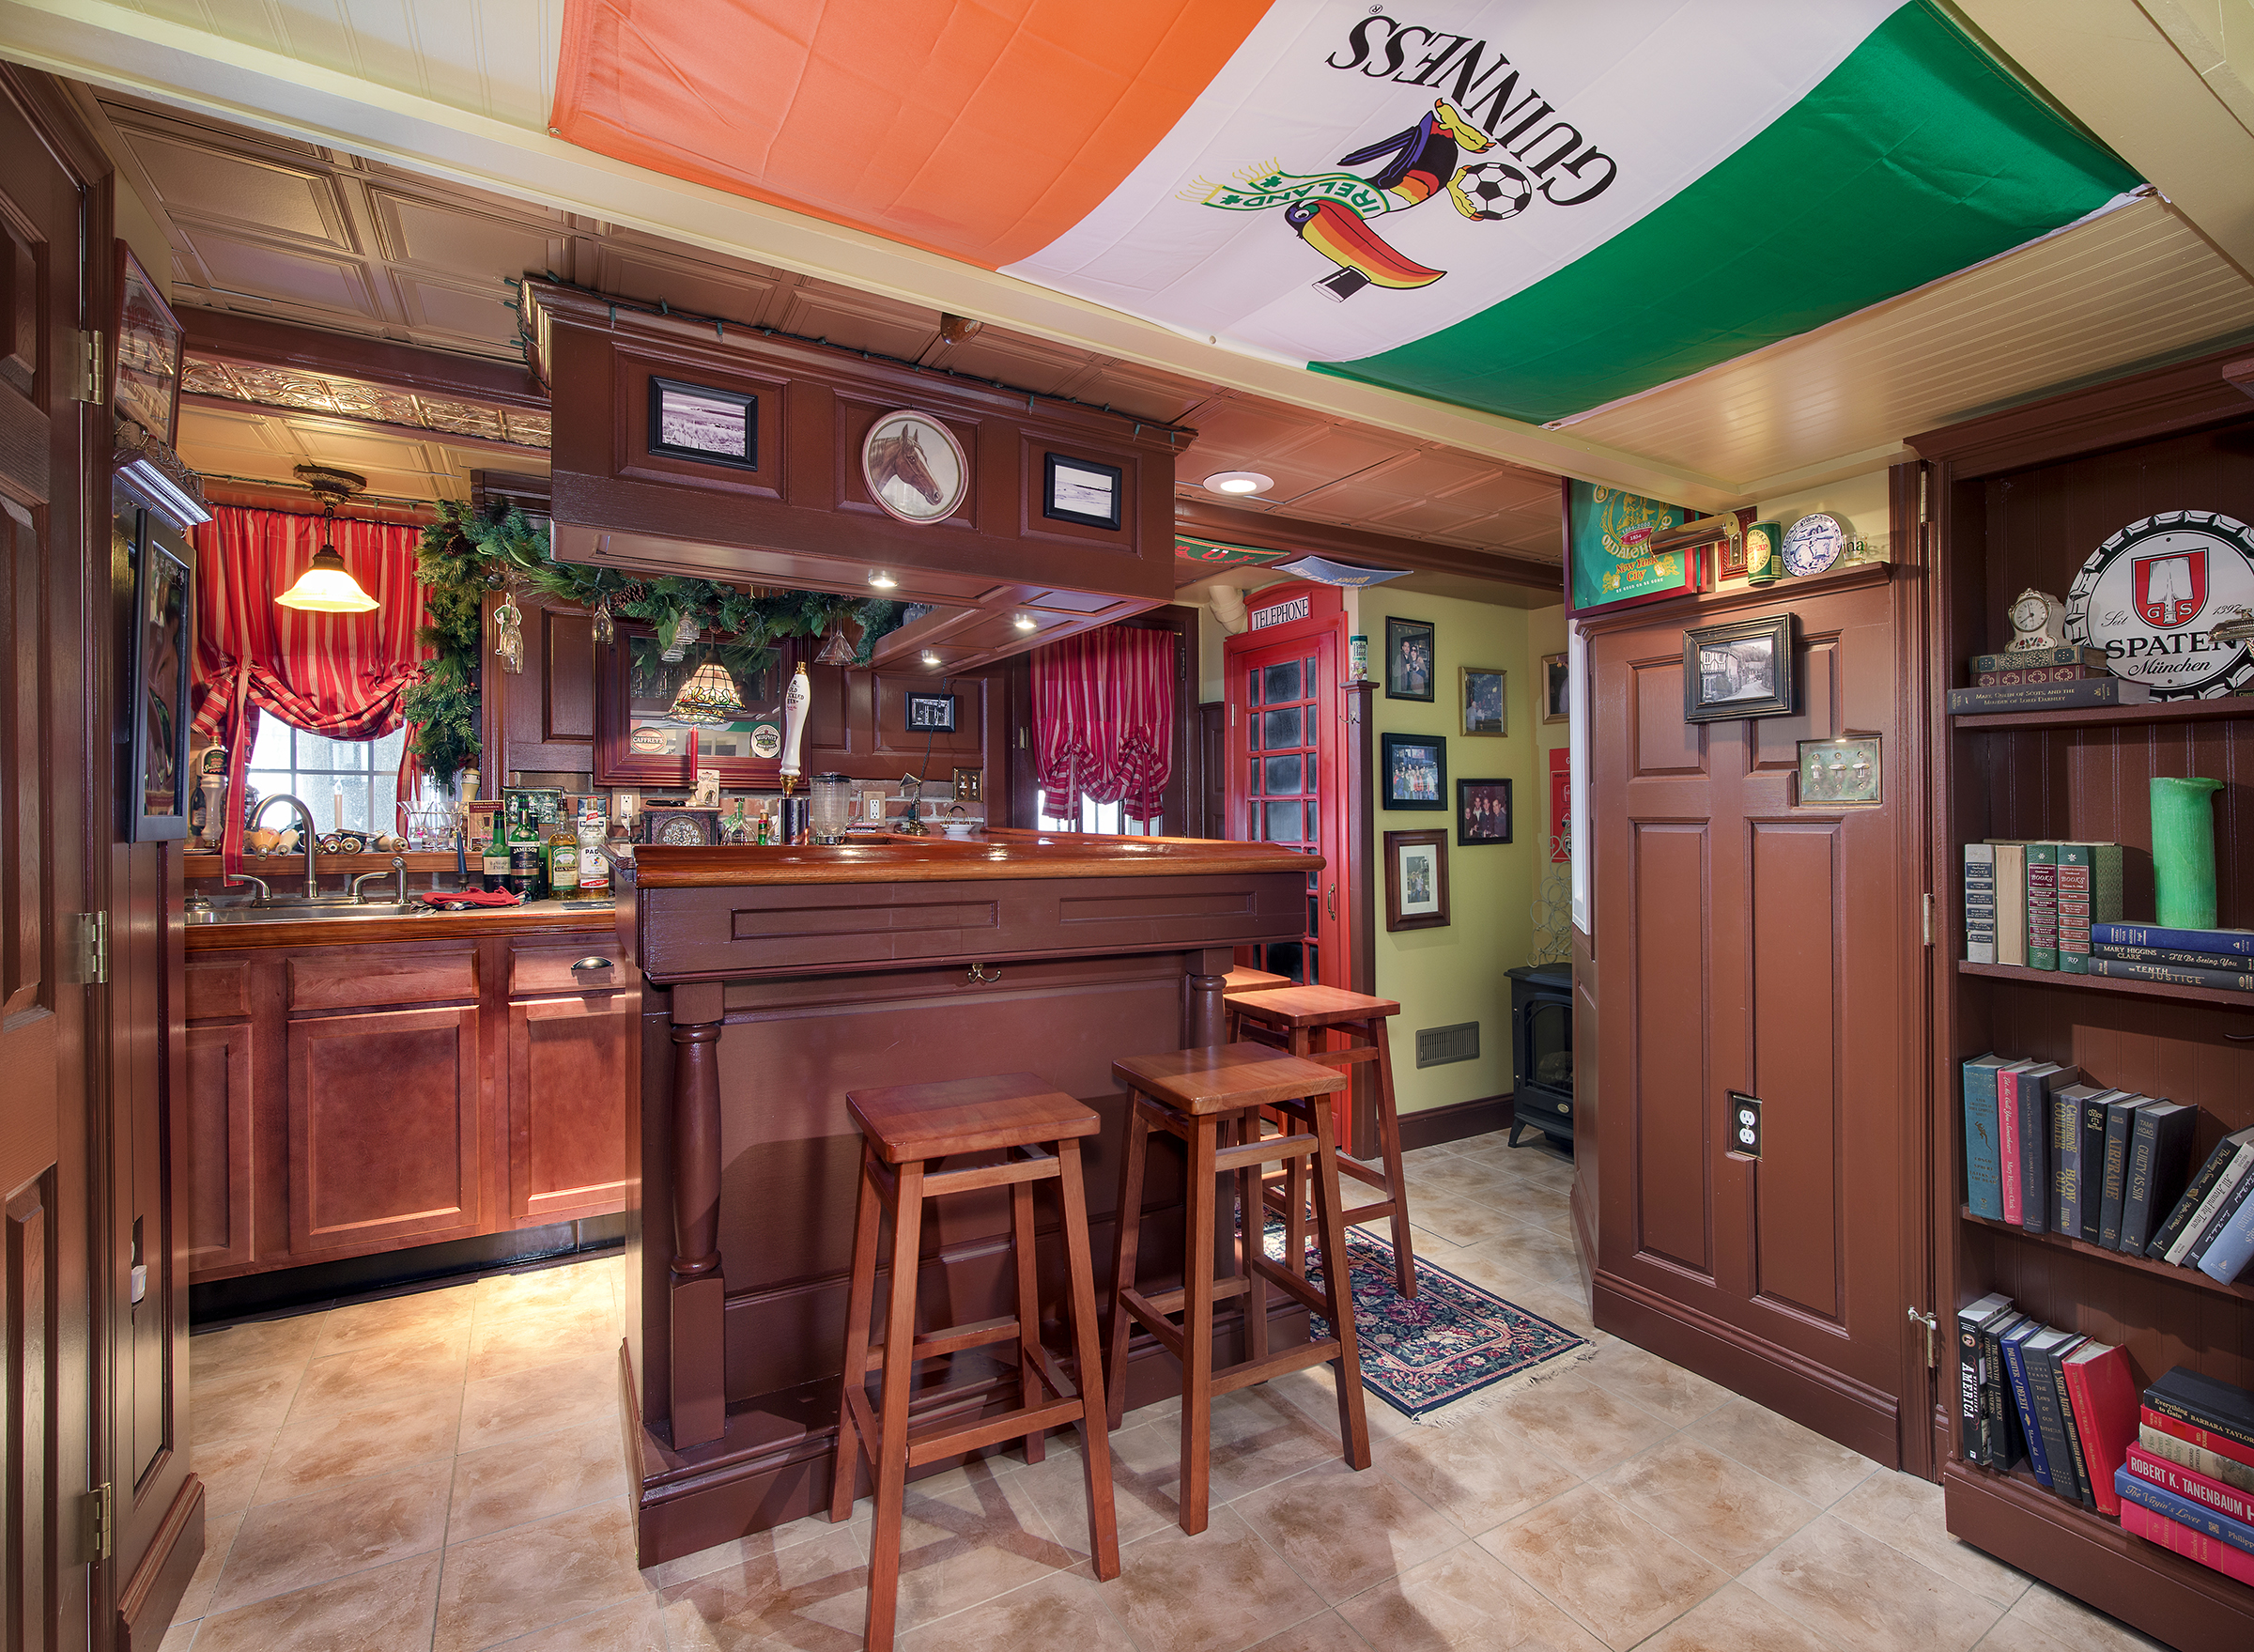 I shot this home bar in 2015. Probably the nicest home pub I've ever shot. Happy St. Patrick's Day